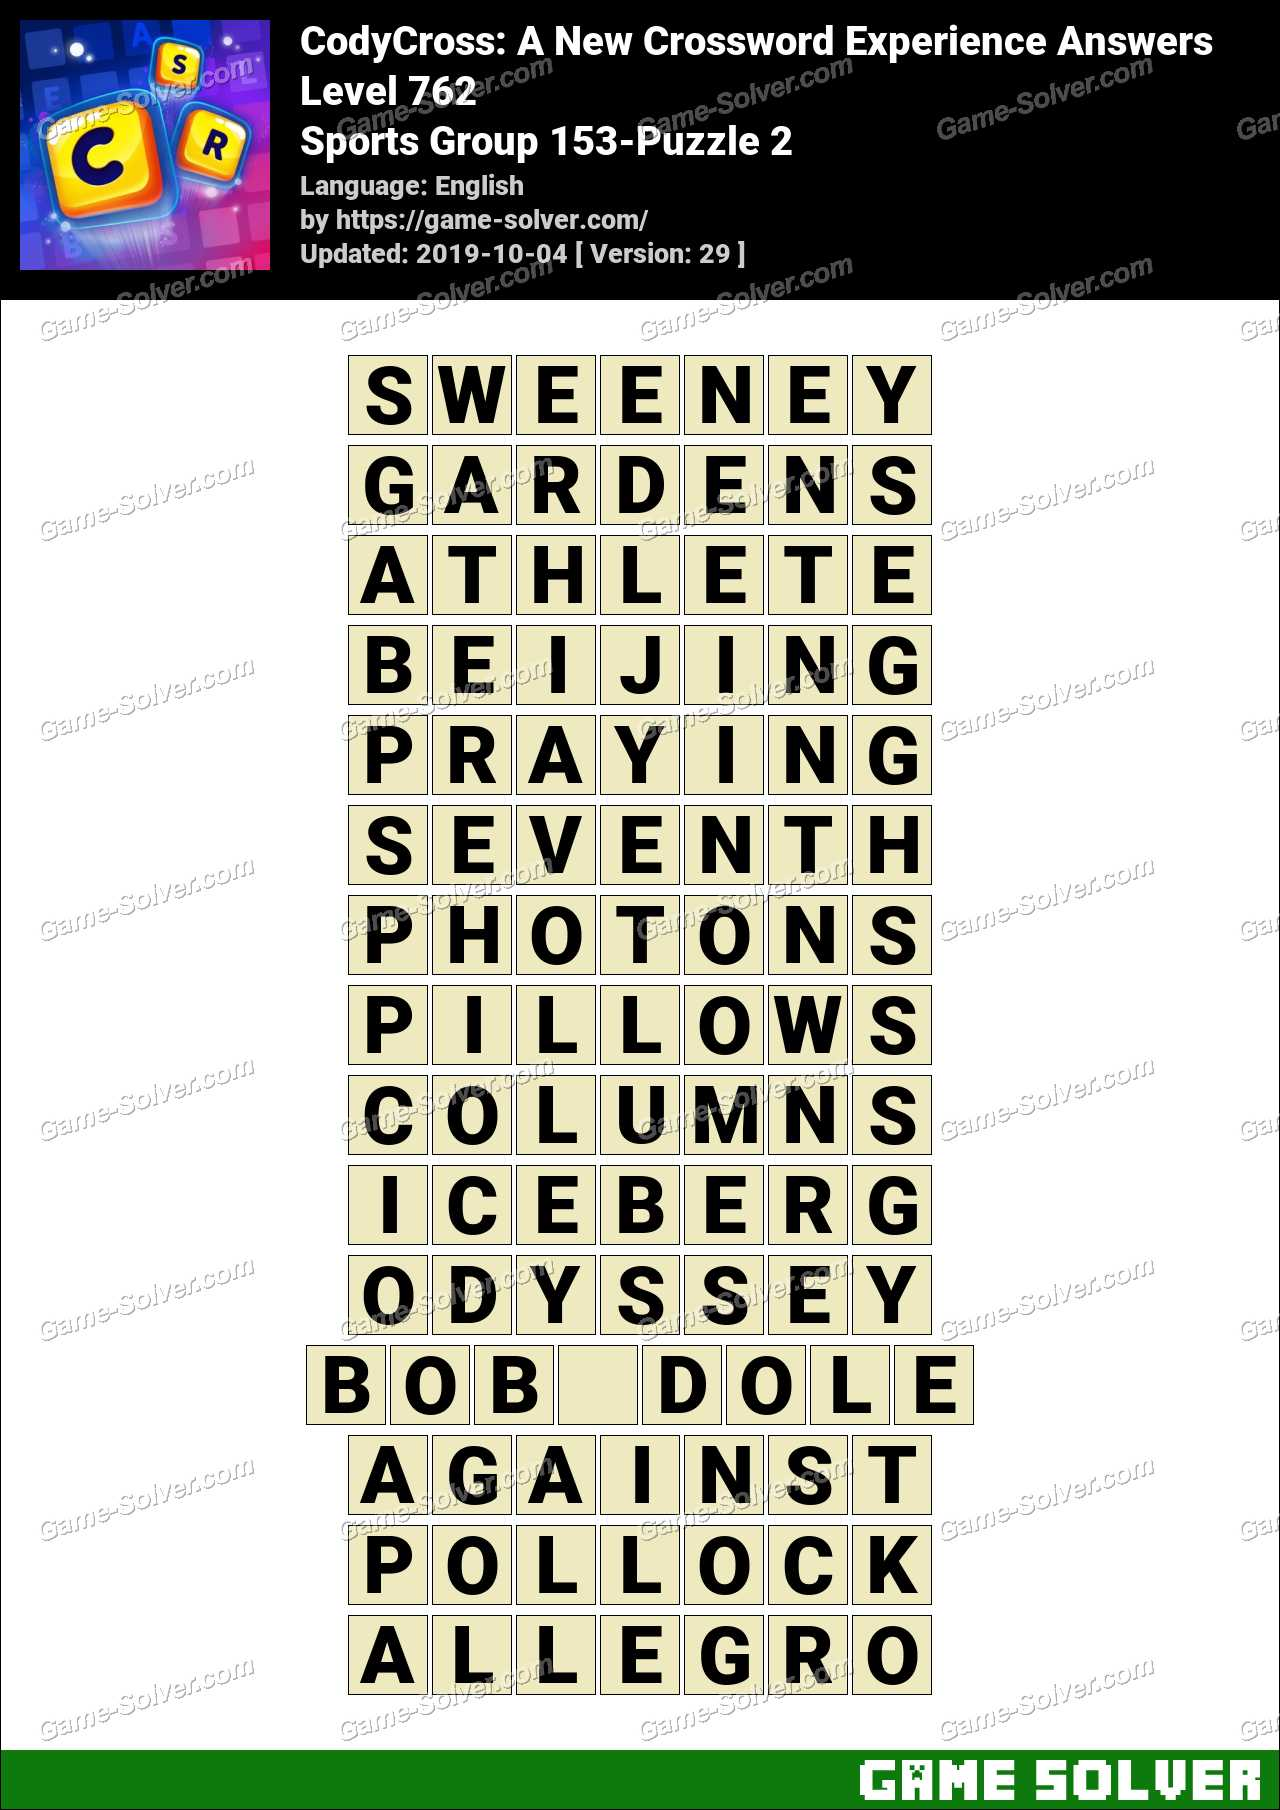 CodyCross Sports Group 153-Puzzle 2 Answers